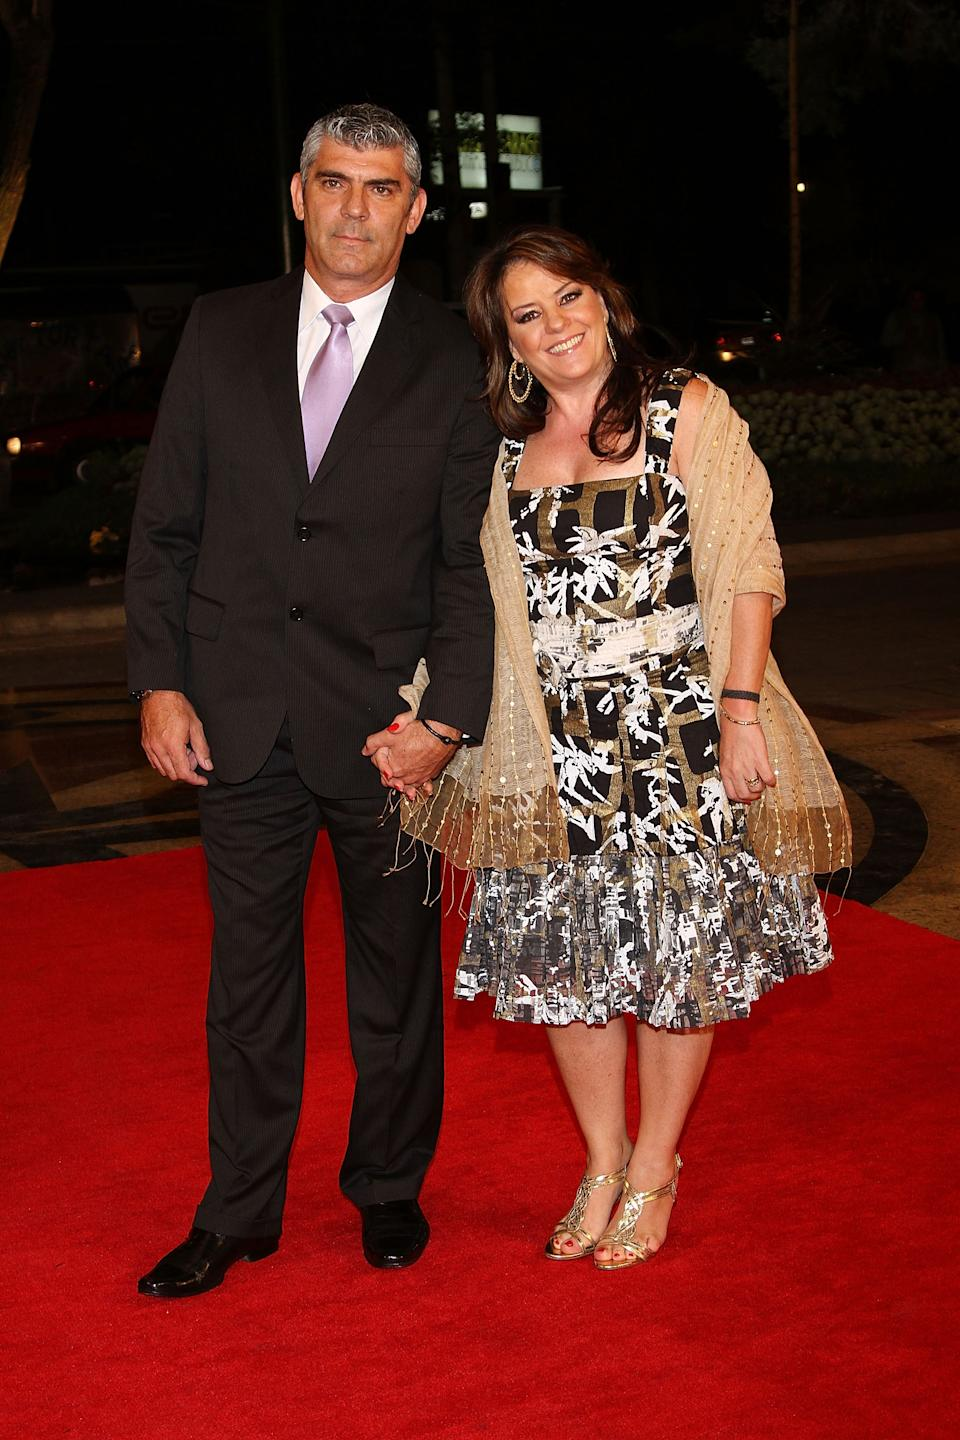 MEXICO CITY - SEPTEMBER 14:  Isabel Lascurain (R) and her husband attends the Miss Universe 2010 Gala Night at Crowne Plaza Hotel on September 14, 2010 in Mexico City, Mexico.  (Photo by Victor Chavez/WireImage)